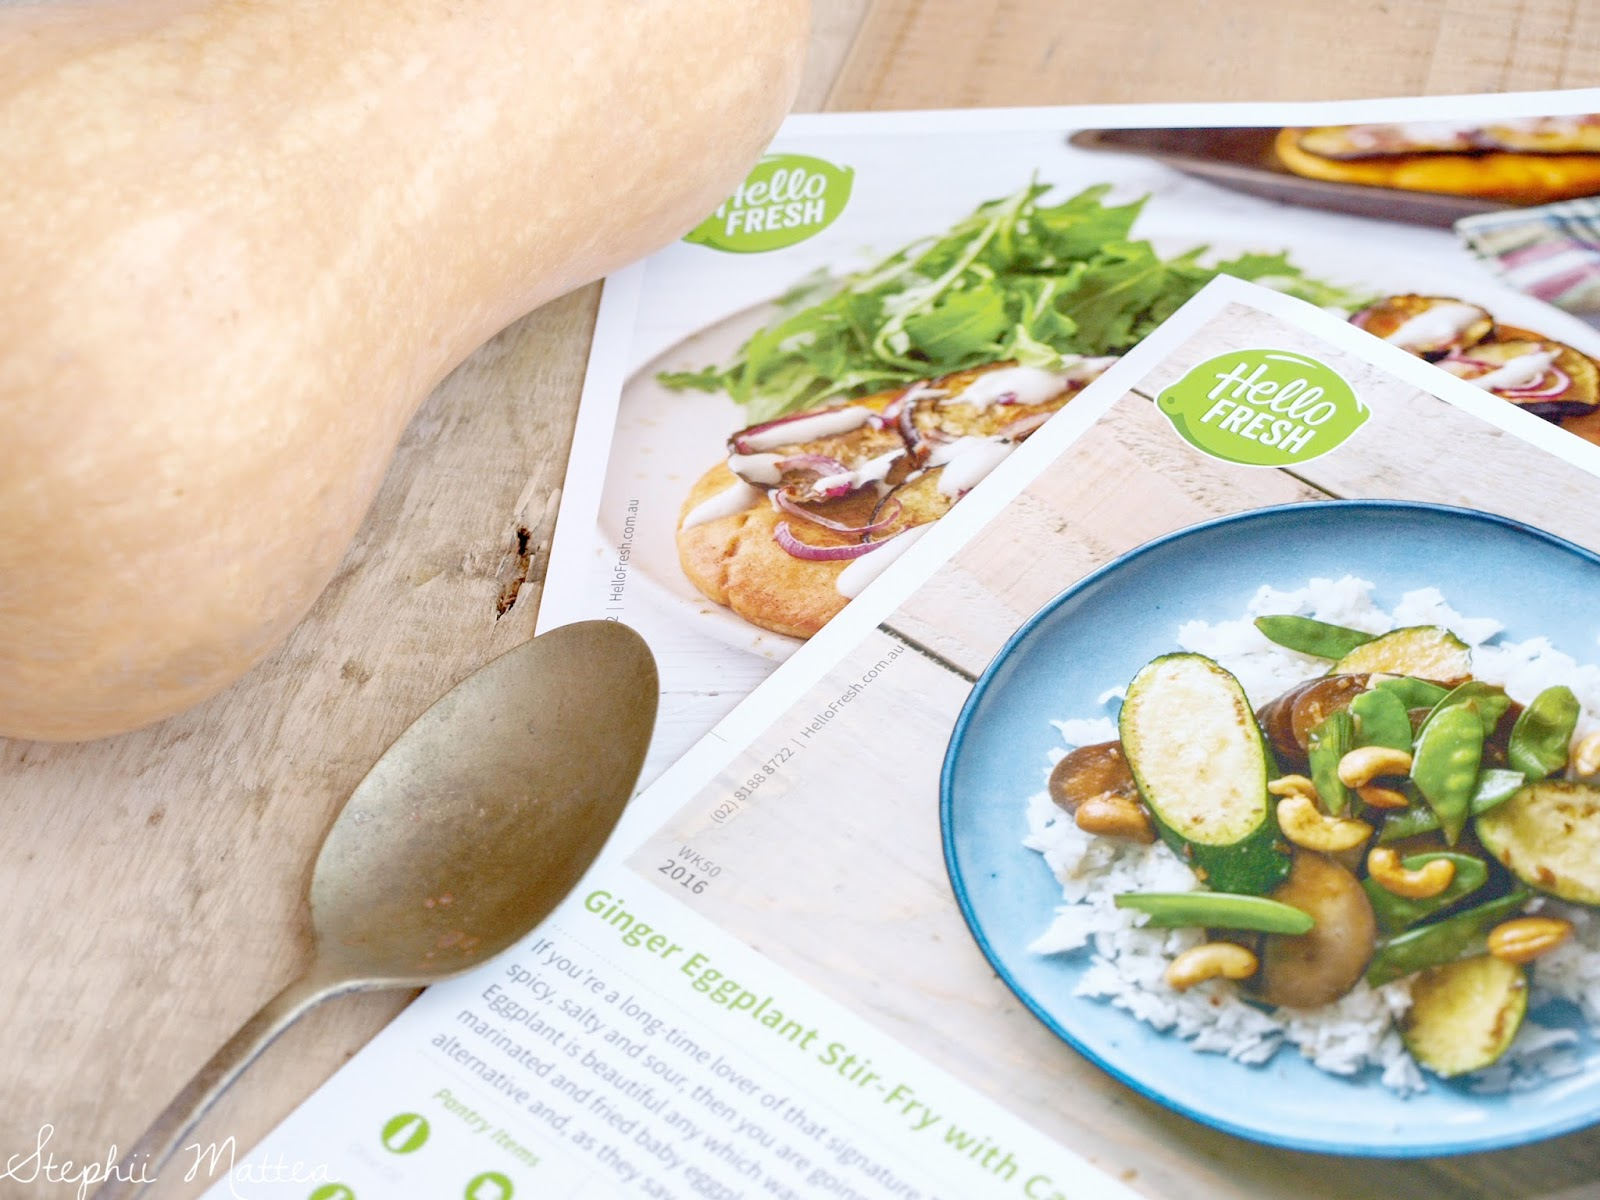 Meal Kit Delivery Service Hellofresh  Deals Today